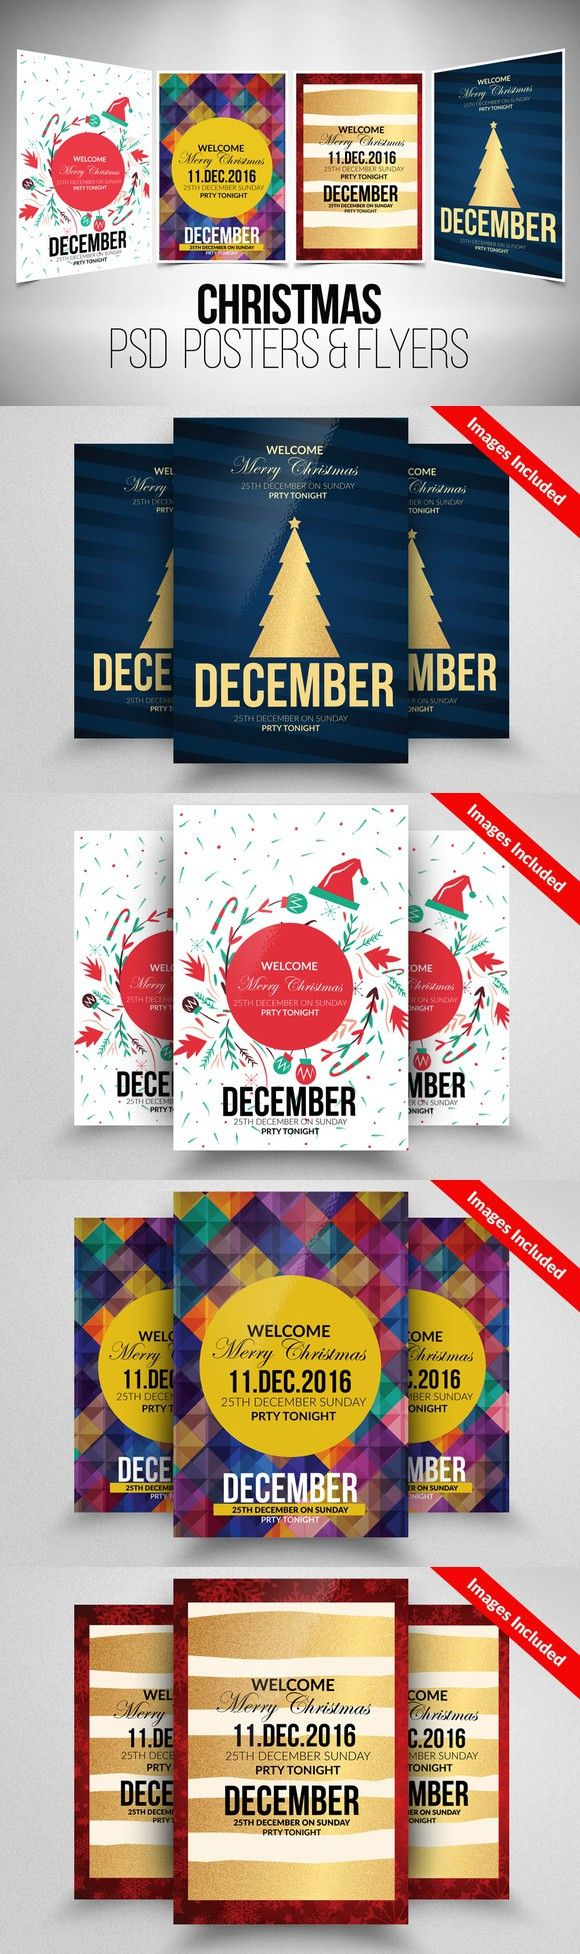 best images about some design ideas christmas 4 christmas flyer template bundle